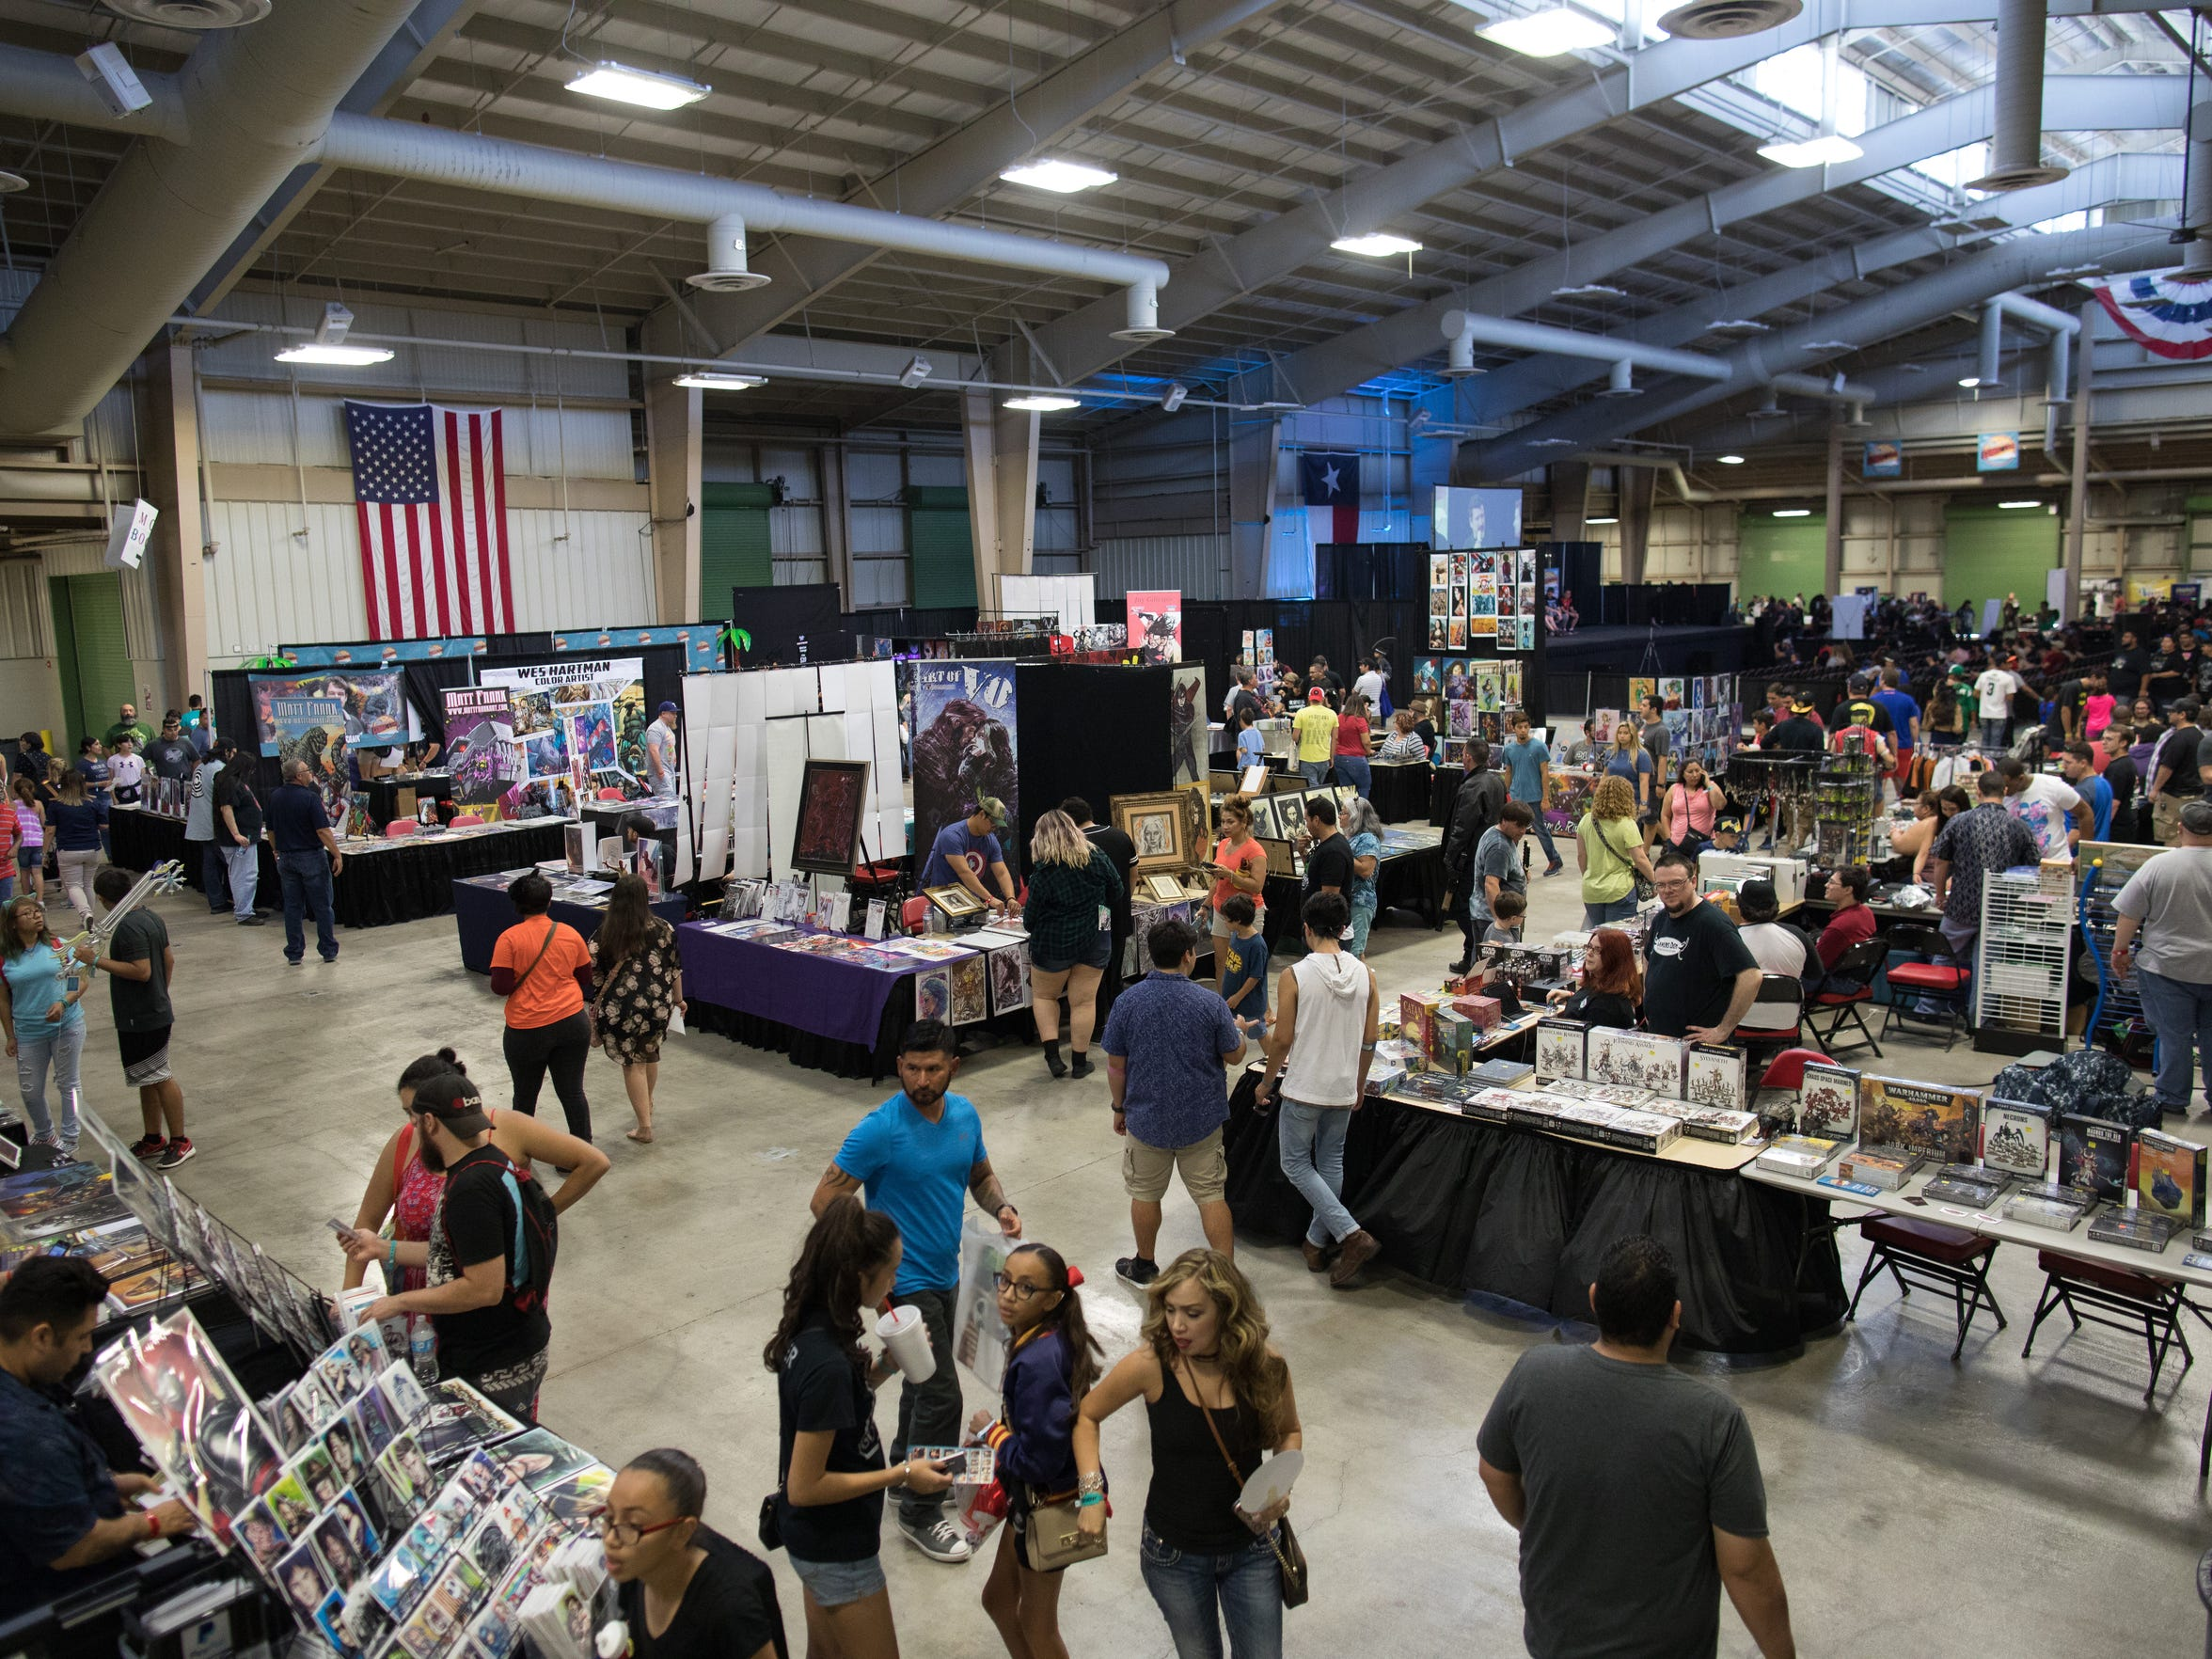 The Corpus Christi Comic Con at Richard M. Borchard